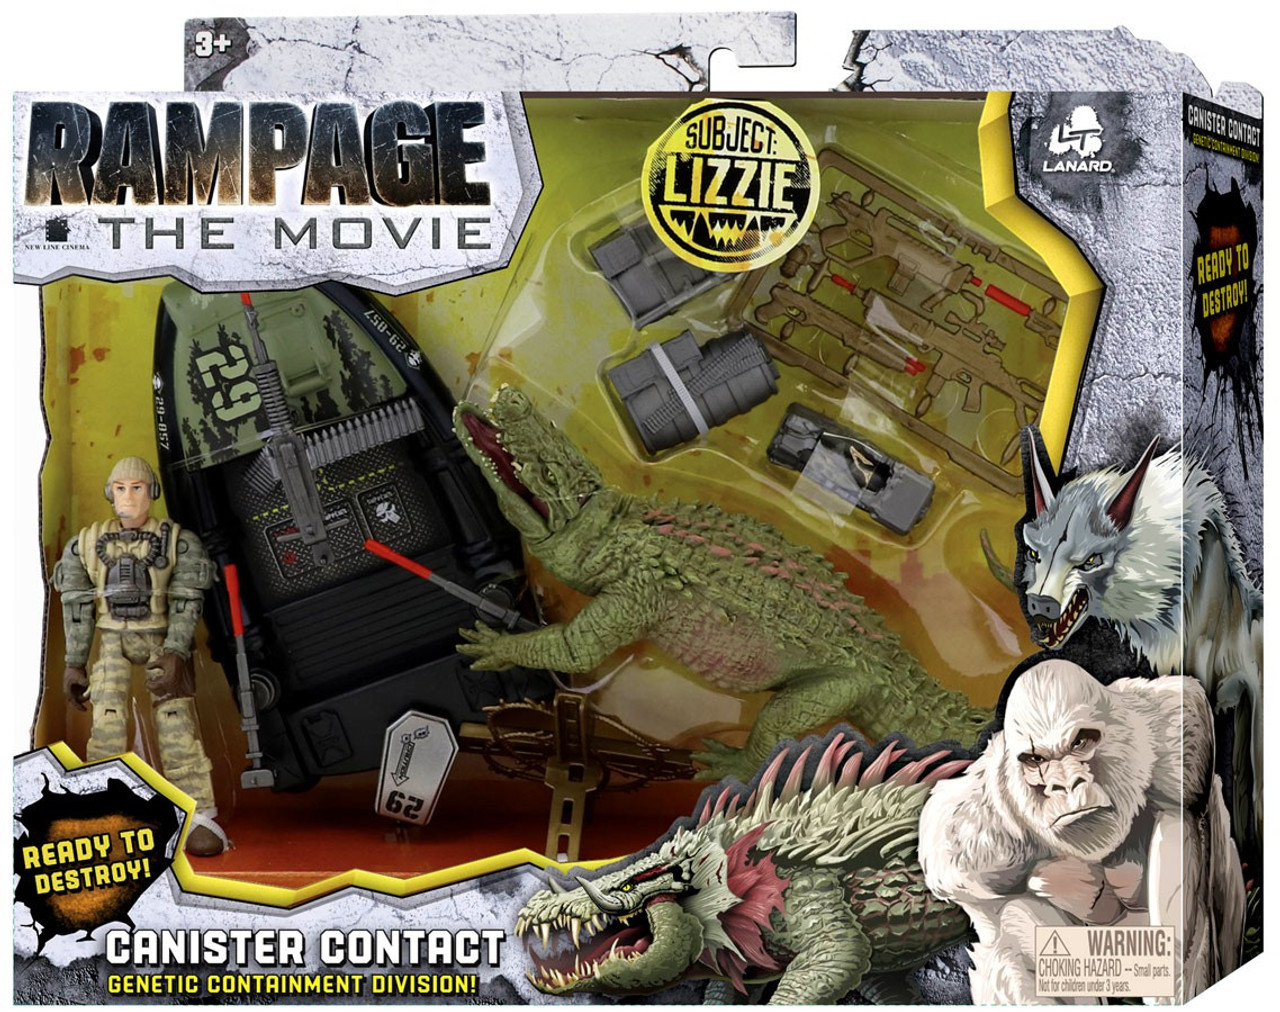 Rampage The Movie Canister Contact Lizzie Exclusive Figure Set